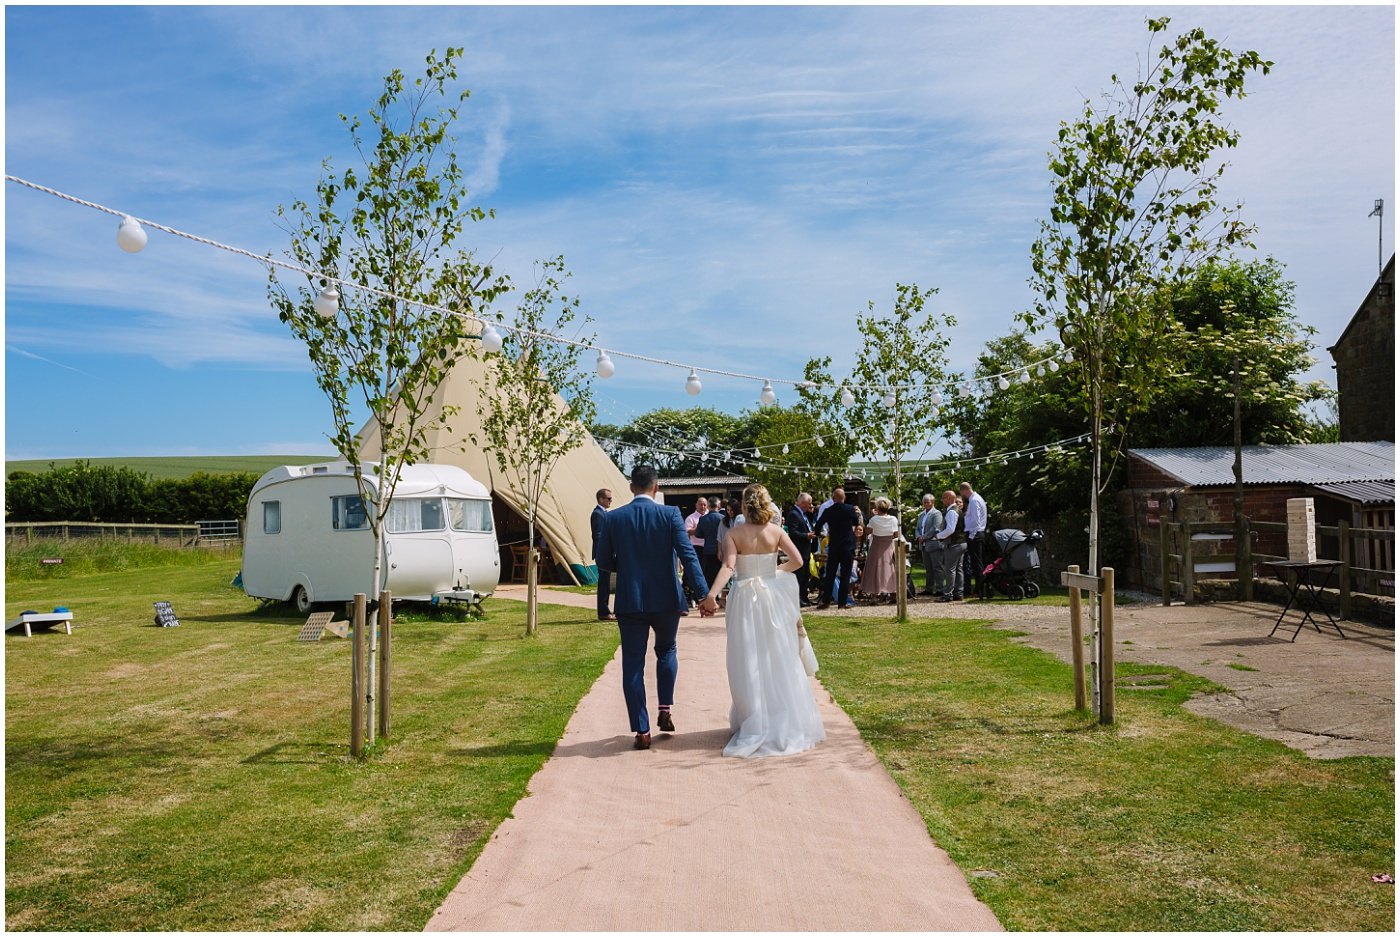 wildwood and eden festival tipi wedding